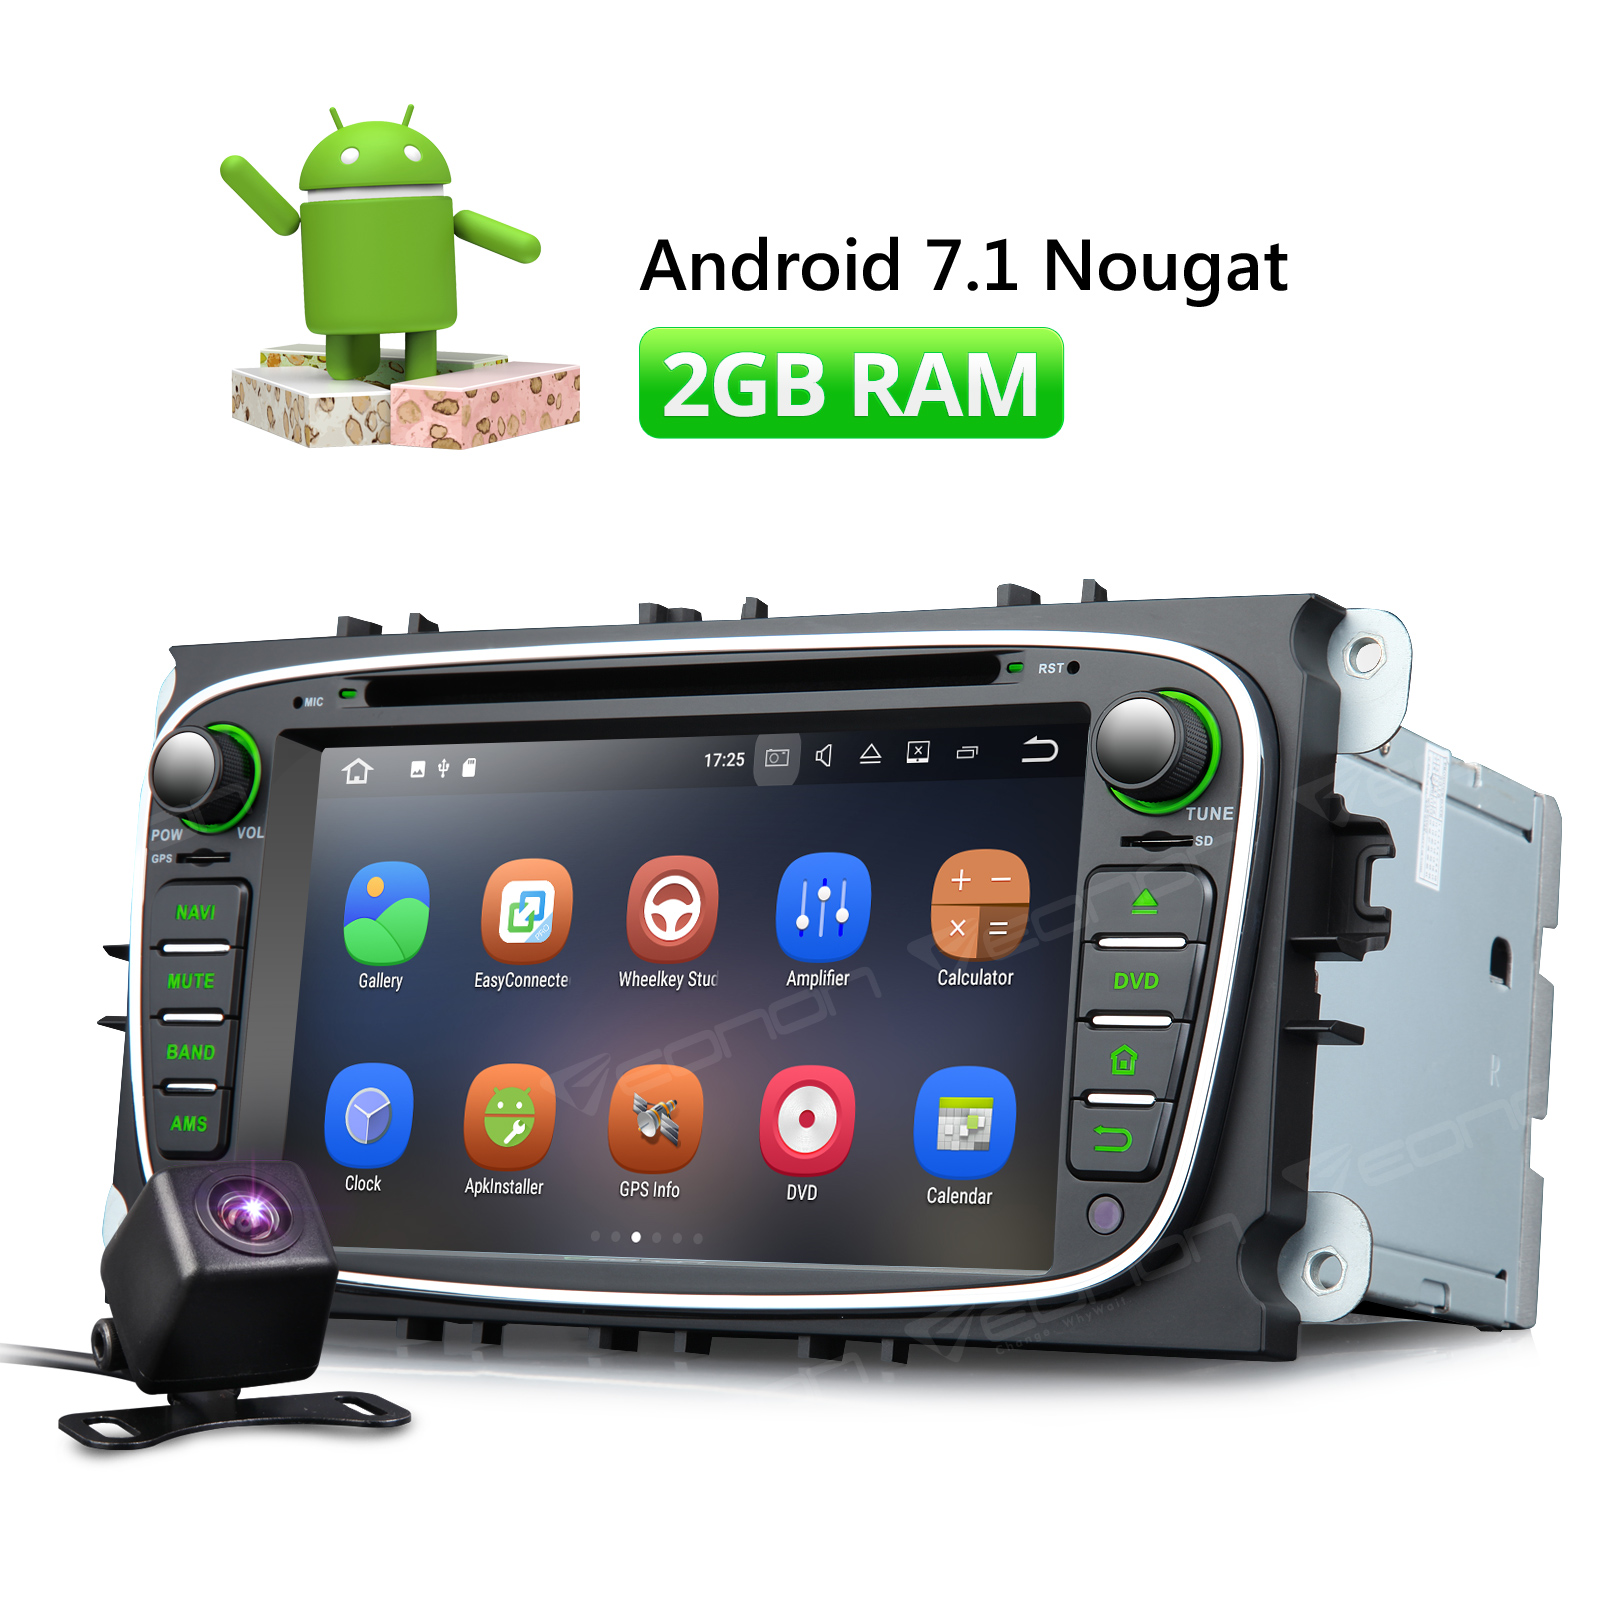 Camera & Eonon 7 Android 7.1 Car CD DVD Player GPS Navigation For Ford Mondeo 2007-2011 Focus 2008-2010 S-max 2008-2010